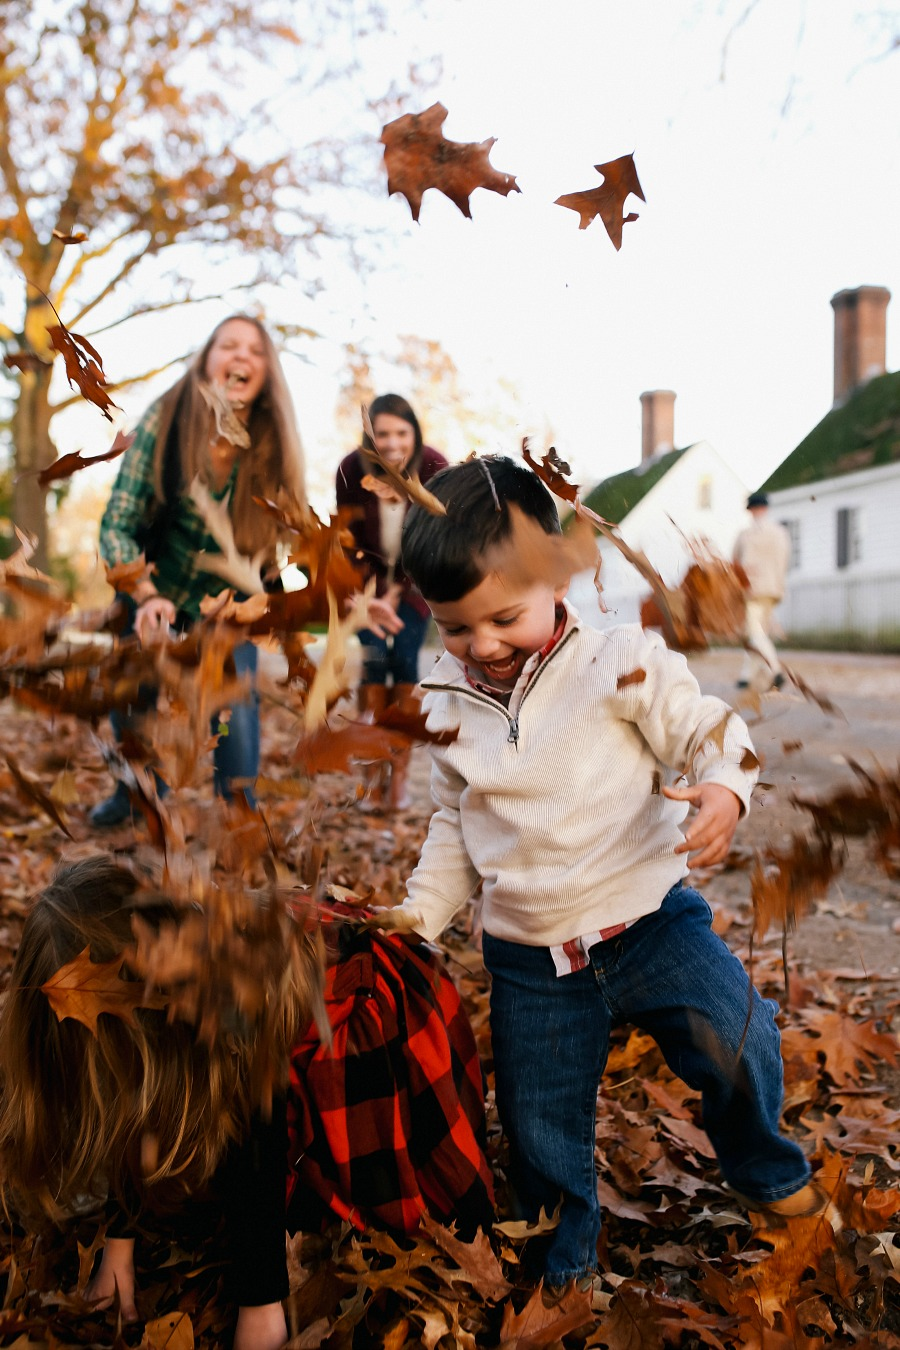 What to do visit Colonial Williamsburg in the fall